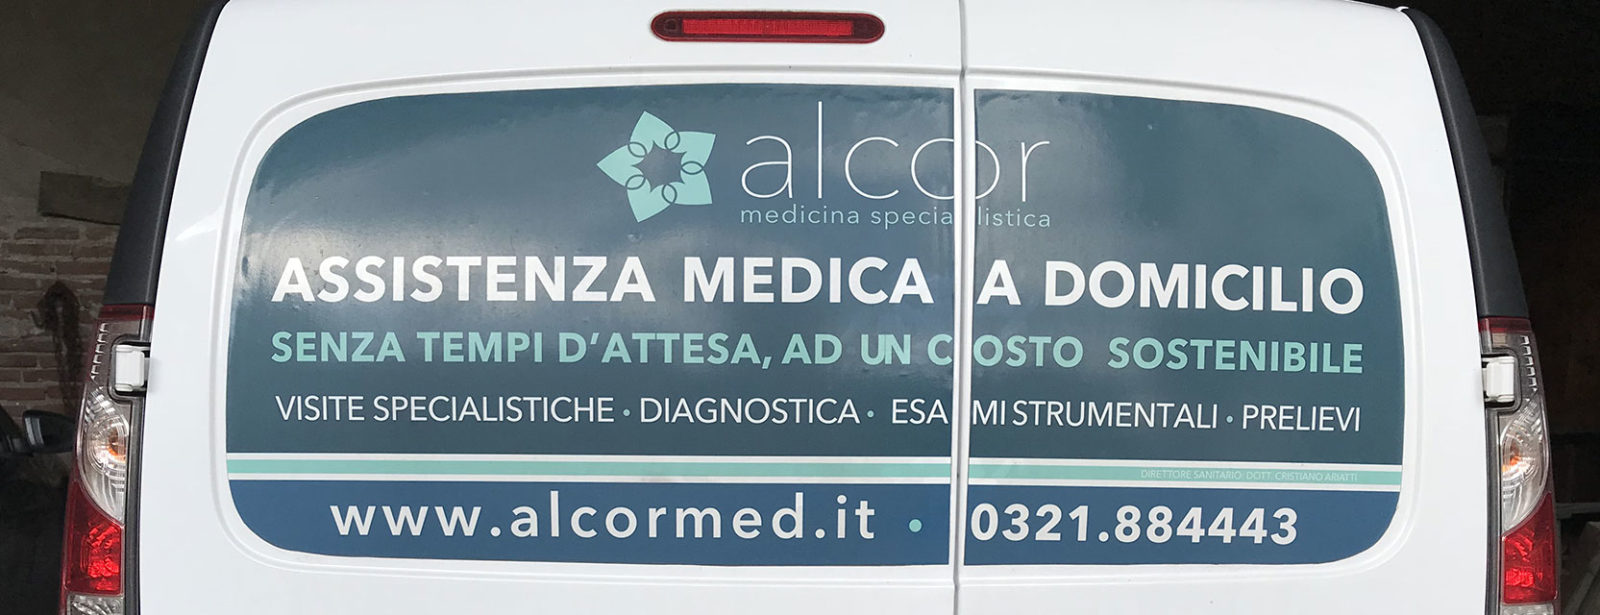 Alcor - Assistenza Medica a Domicilio